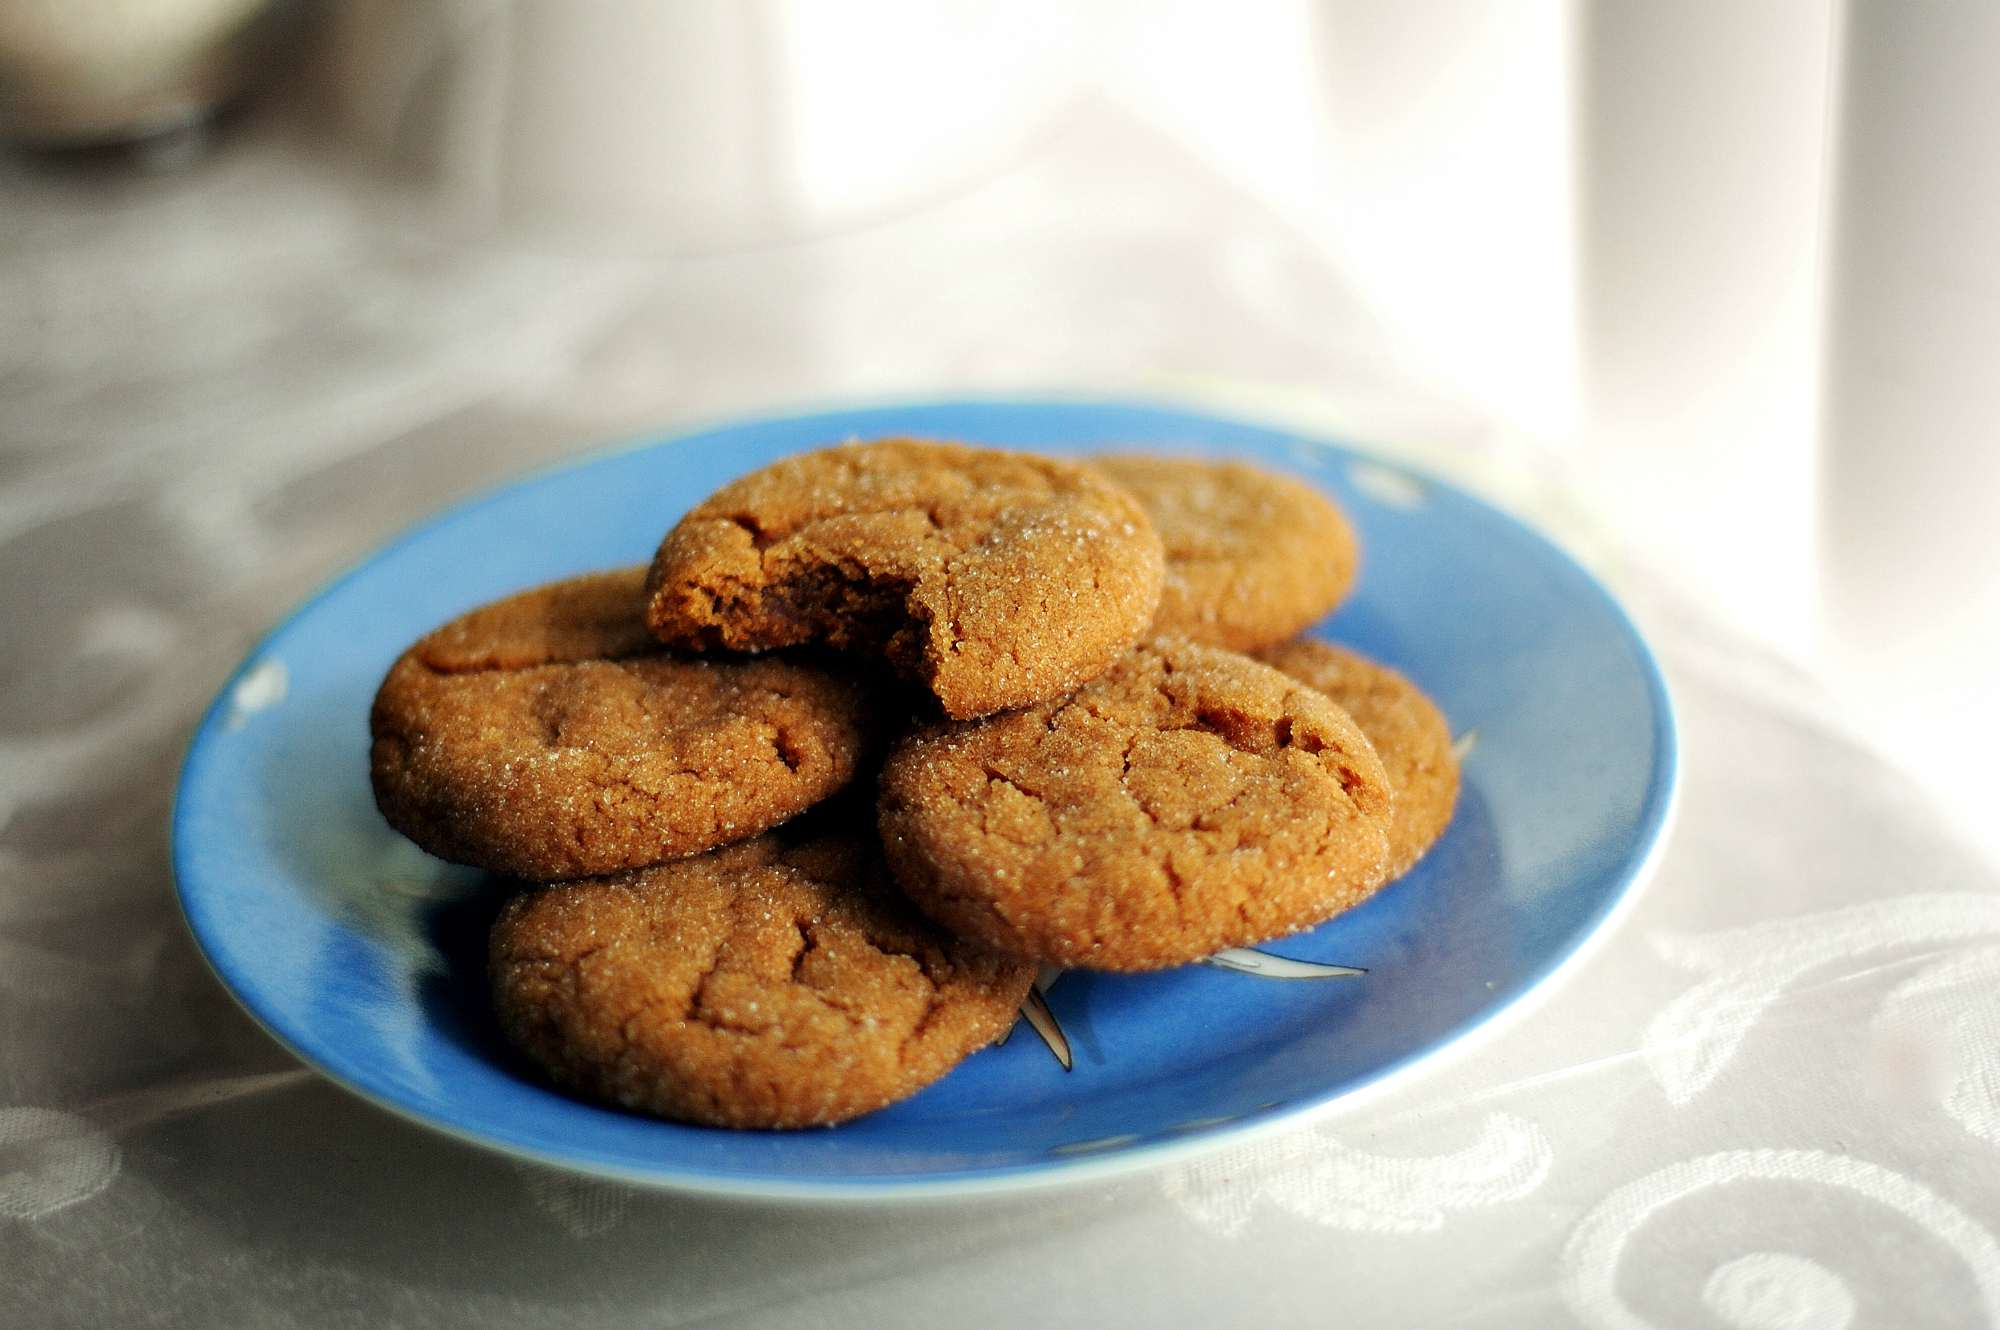 Gluten-free molasses and ginger cookies on a serving plate